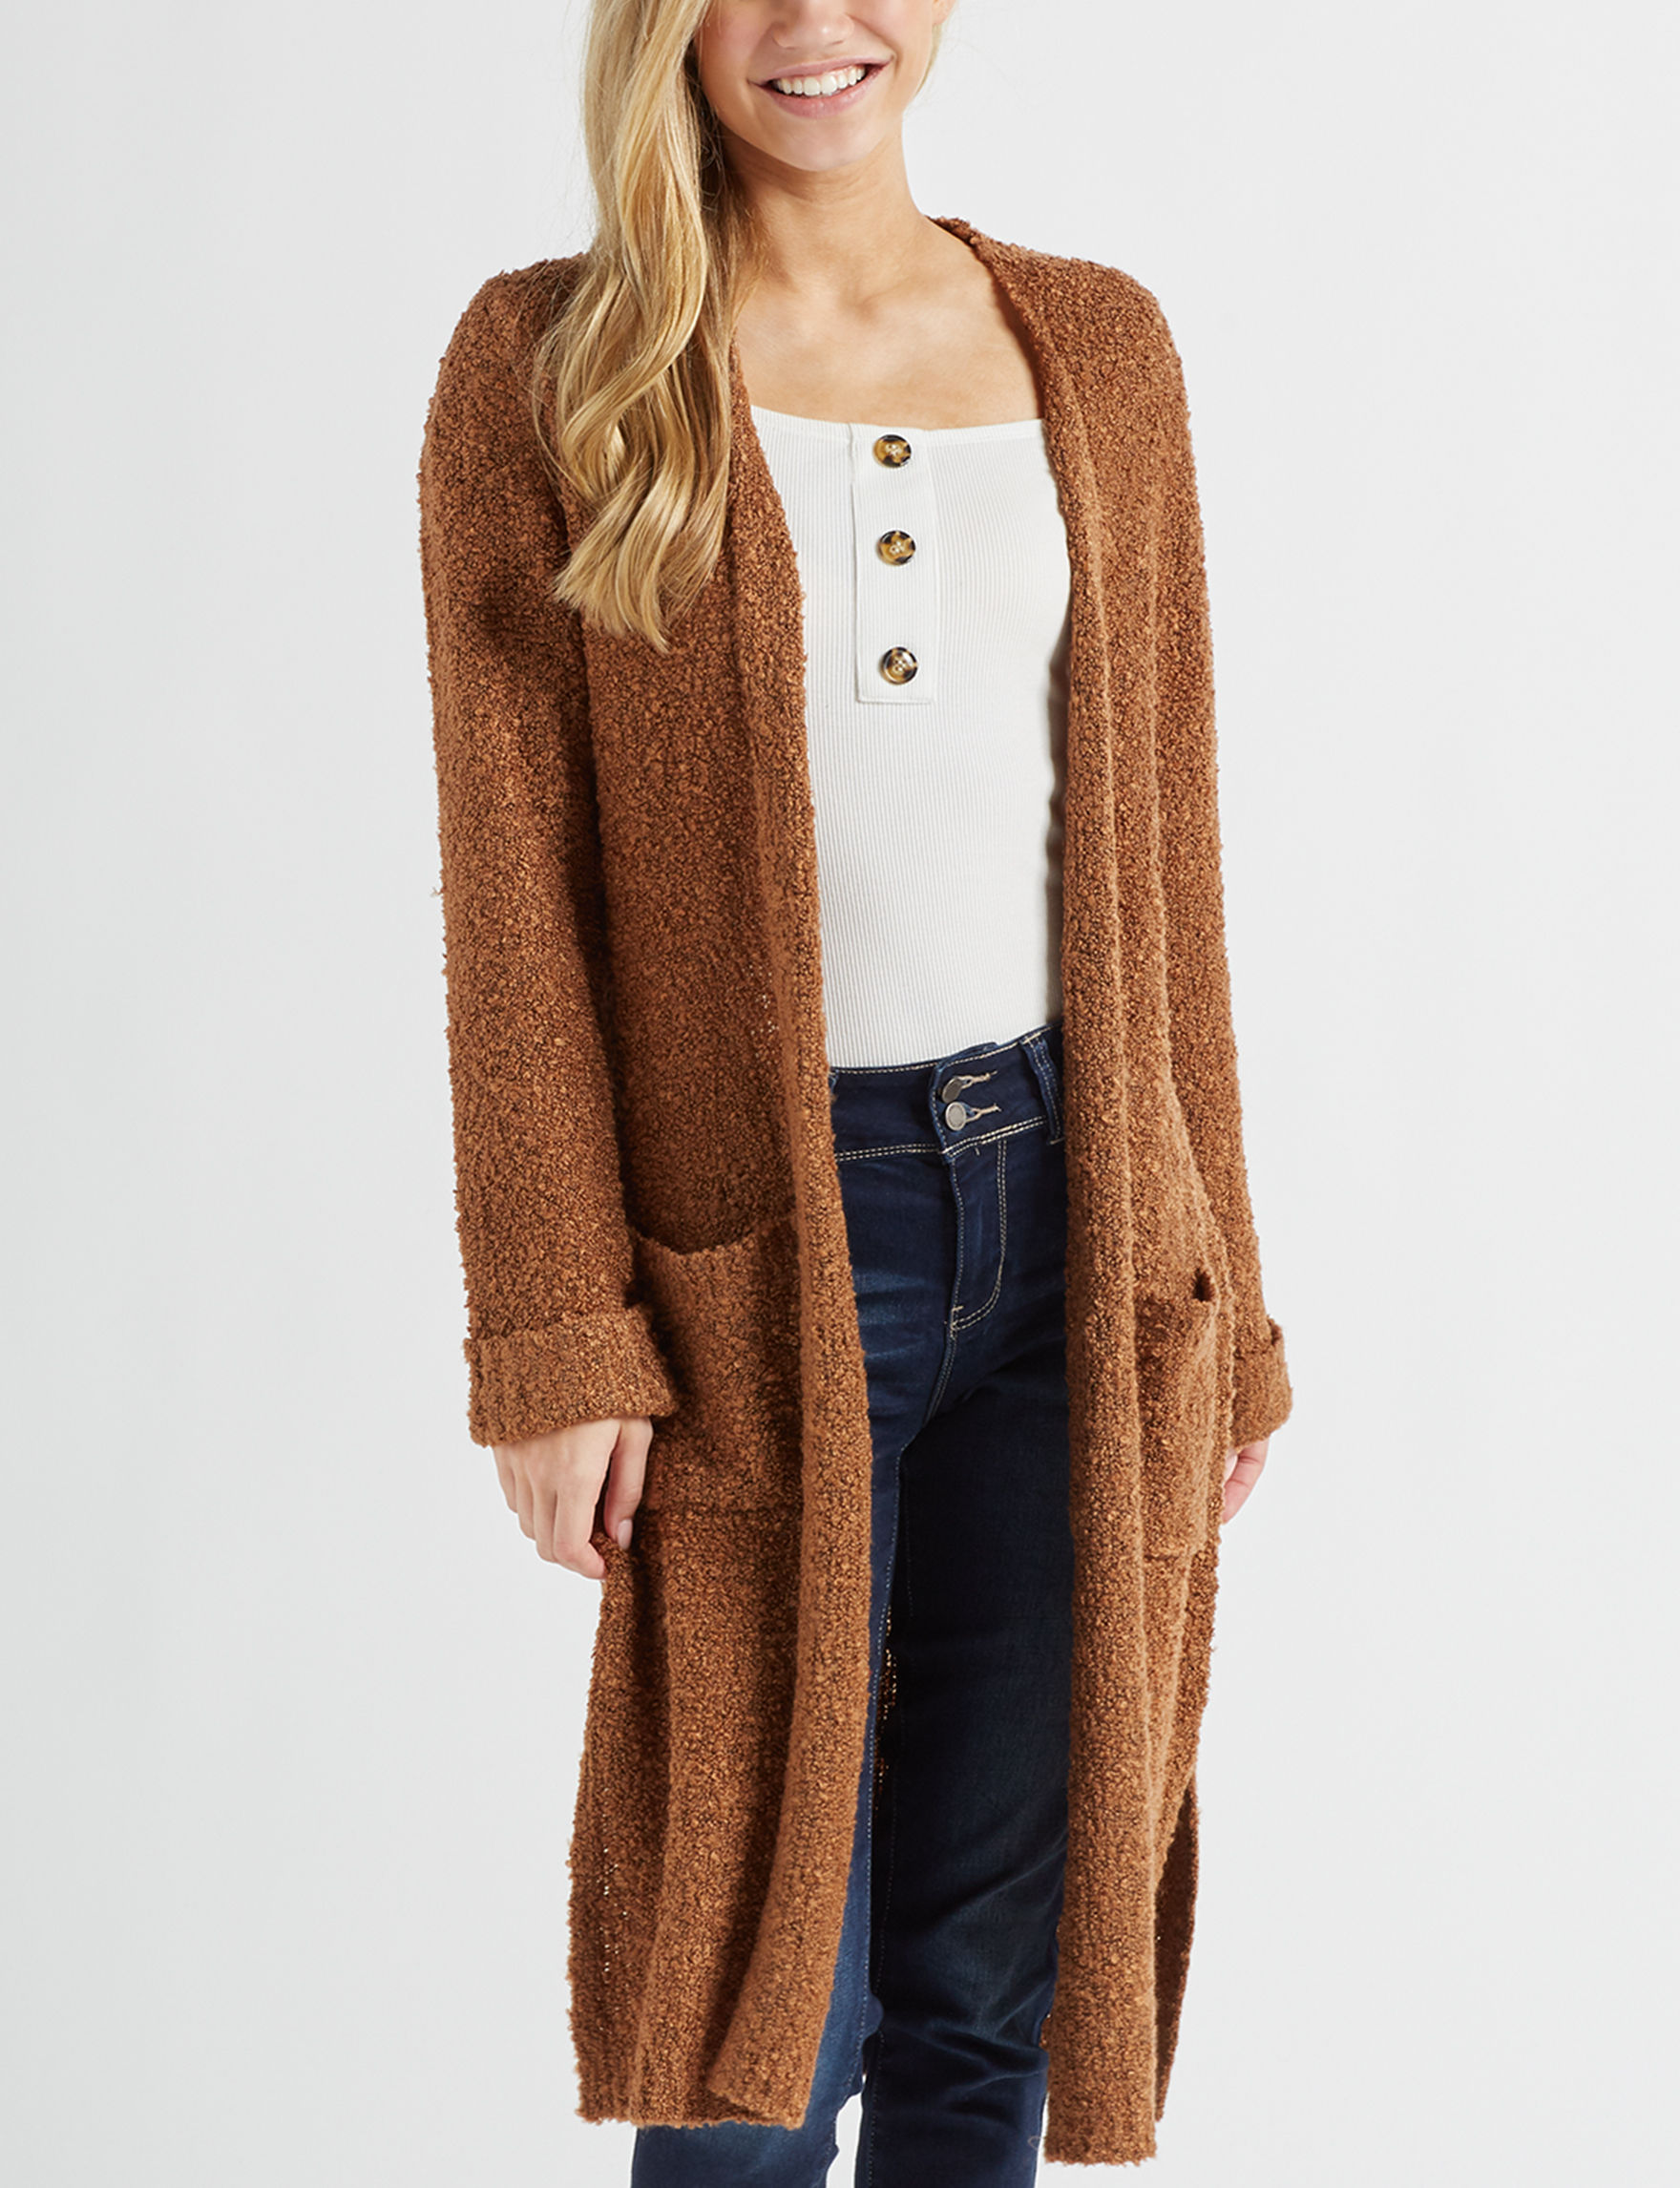 It's Our Time Medium Brown Cardigans